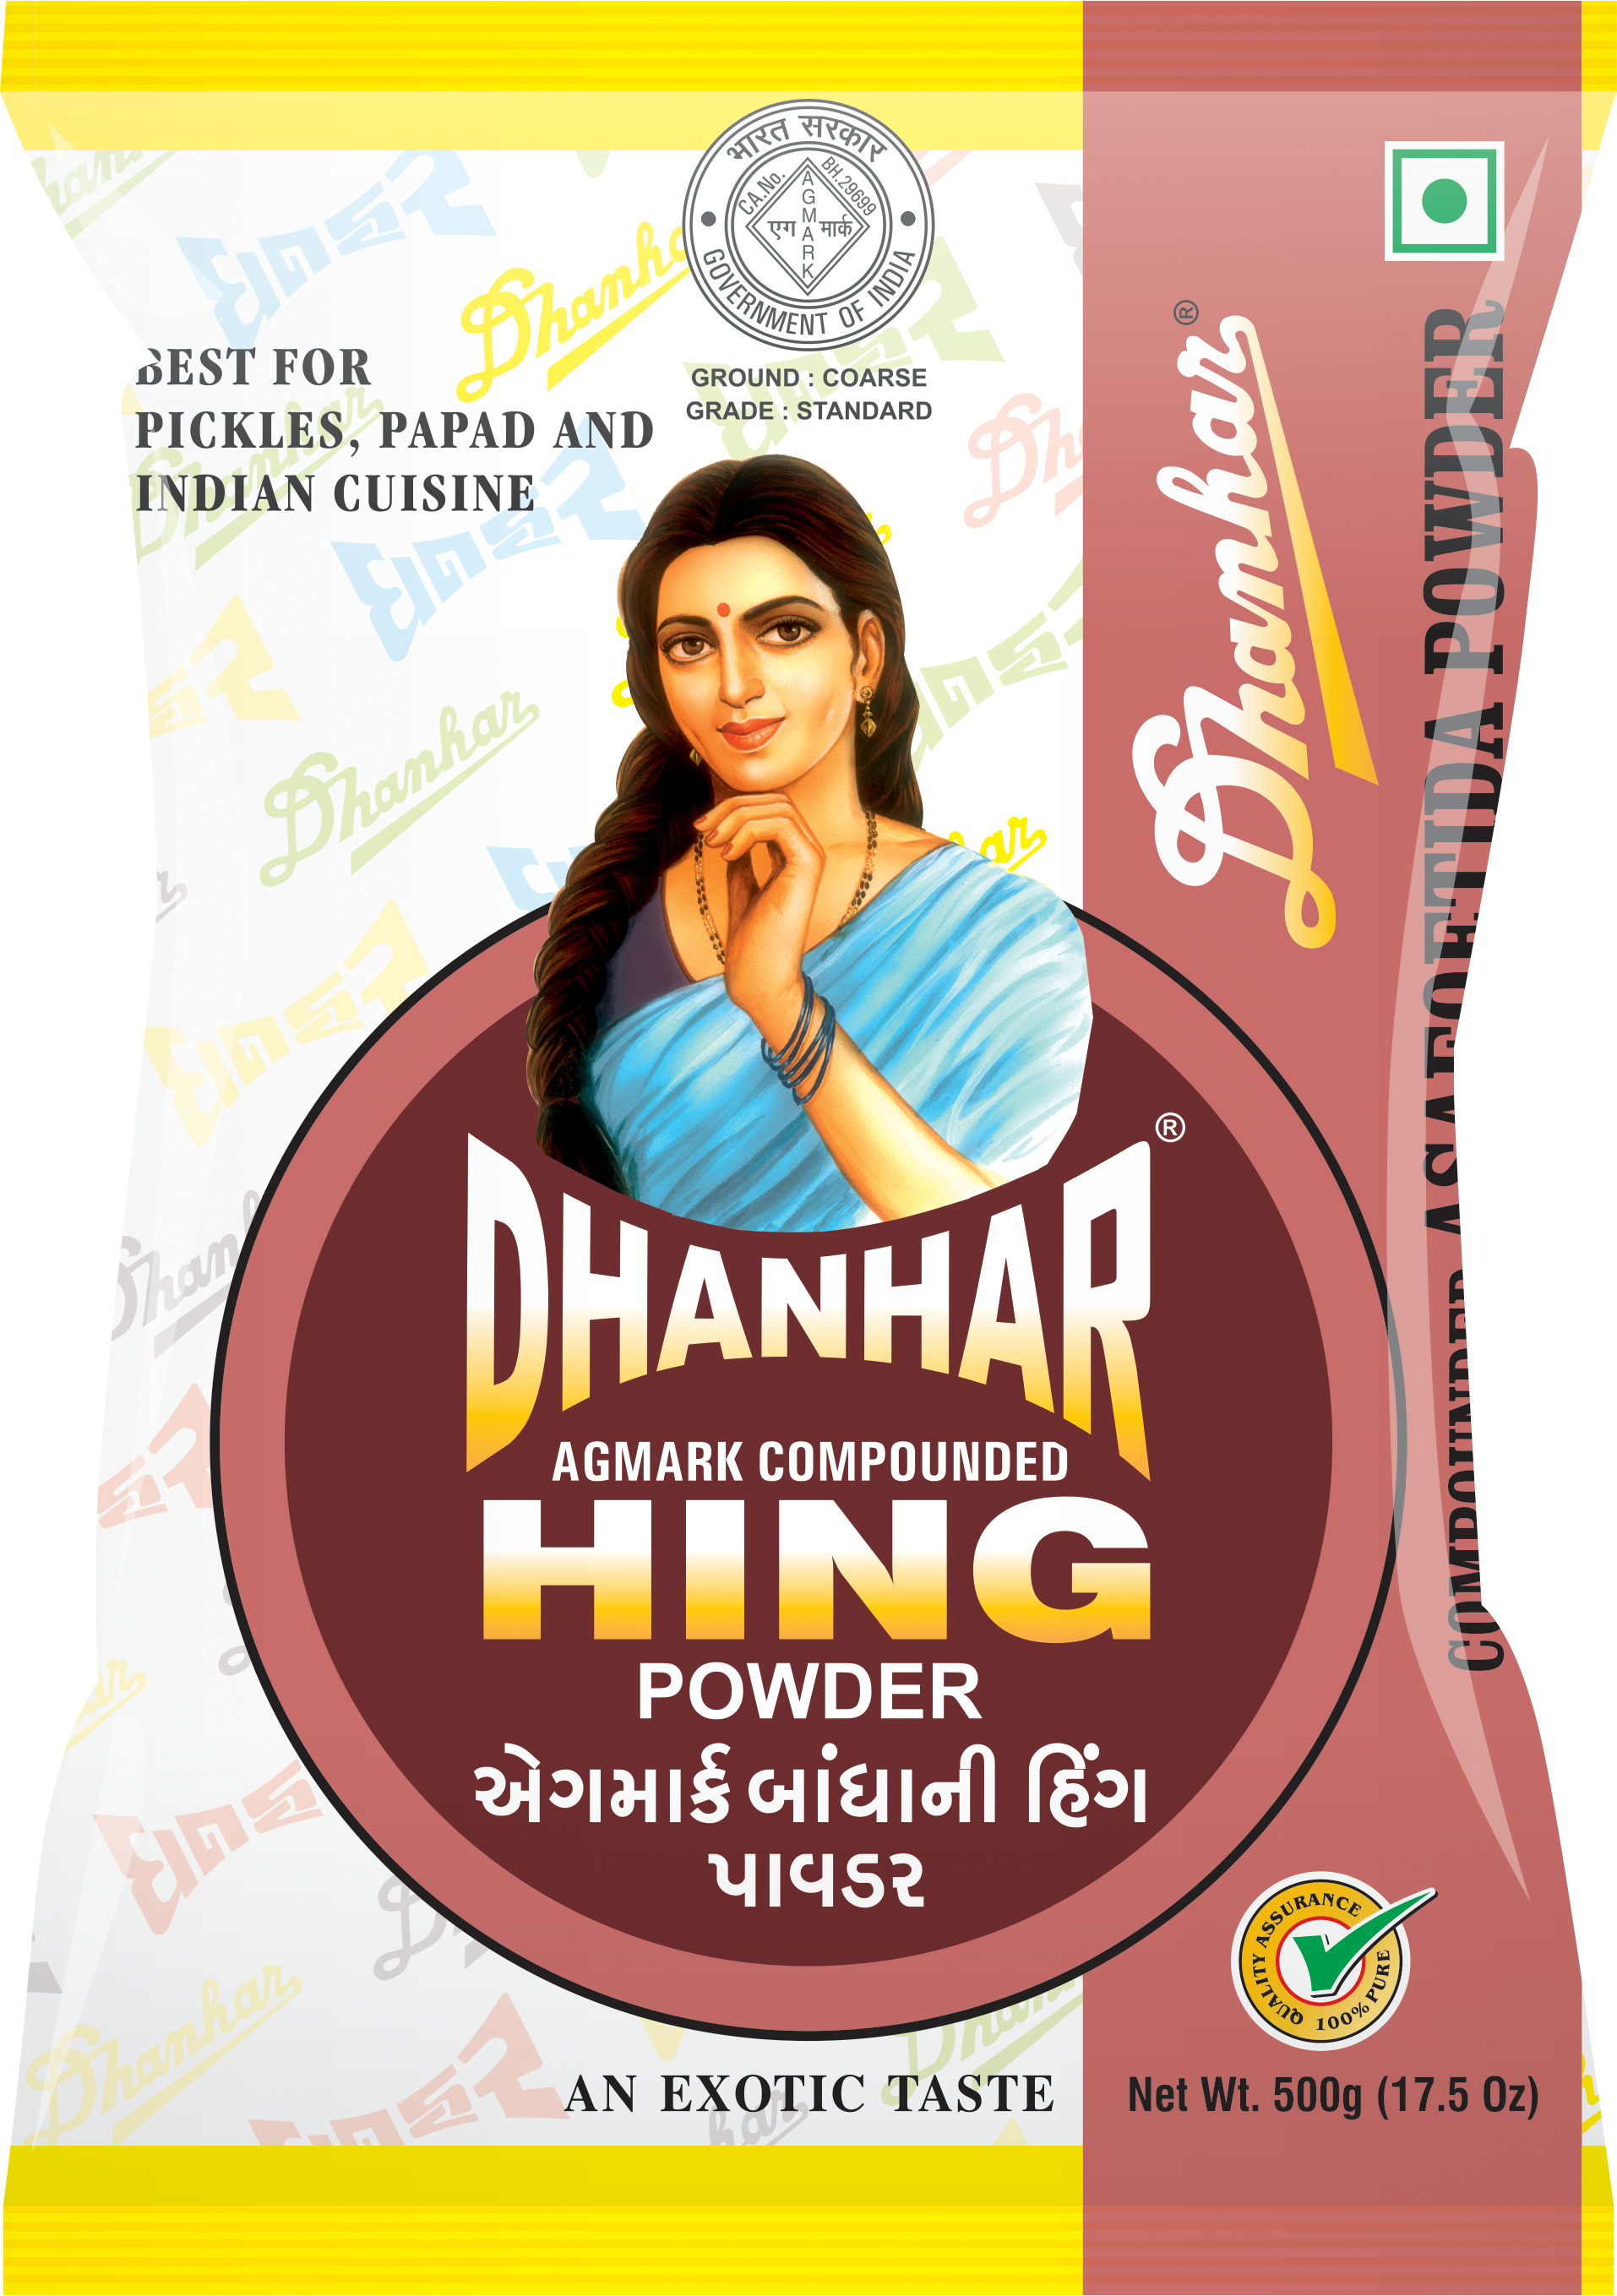 Dhanhar Masala' is a pioneer manufacturer, exporter, wholesaler/distributor, supplier and traderin the field of Spices. The company was incorporated with a vision to revolutionize the business definition by making international quality of Spices and Spice Powder. With humble beginnings, we are consciously covering the path of success with our dynamic spirit of entrepreneurship.   With the perseverance and hard work of our team, we made it possible to reach new avenues. Today, we have reached the epitome of culinary excellence. Suggestive inputs from our clients and employees have helped us scale new heights of culinary brilliance in the field of all kinds of Spices, Spice Powders, Hing, Indian Curry Spices, Indian Spices, Masala Powder, black pepper, spice mixes, like Garam Masala, Sambar Powder. ..... exporters of all spices and also suppliers, manufacturers of all spices in Maharashtra, madhyapradesh Rajasthan Cumin. Coriander. Nutmeg and mace. Mustard seeds.